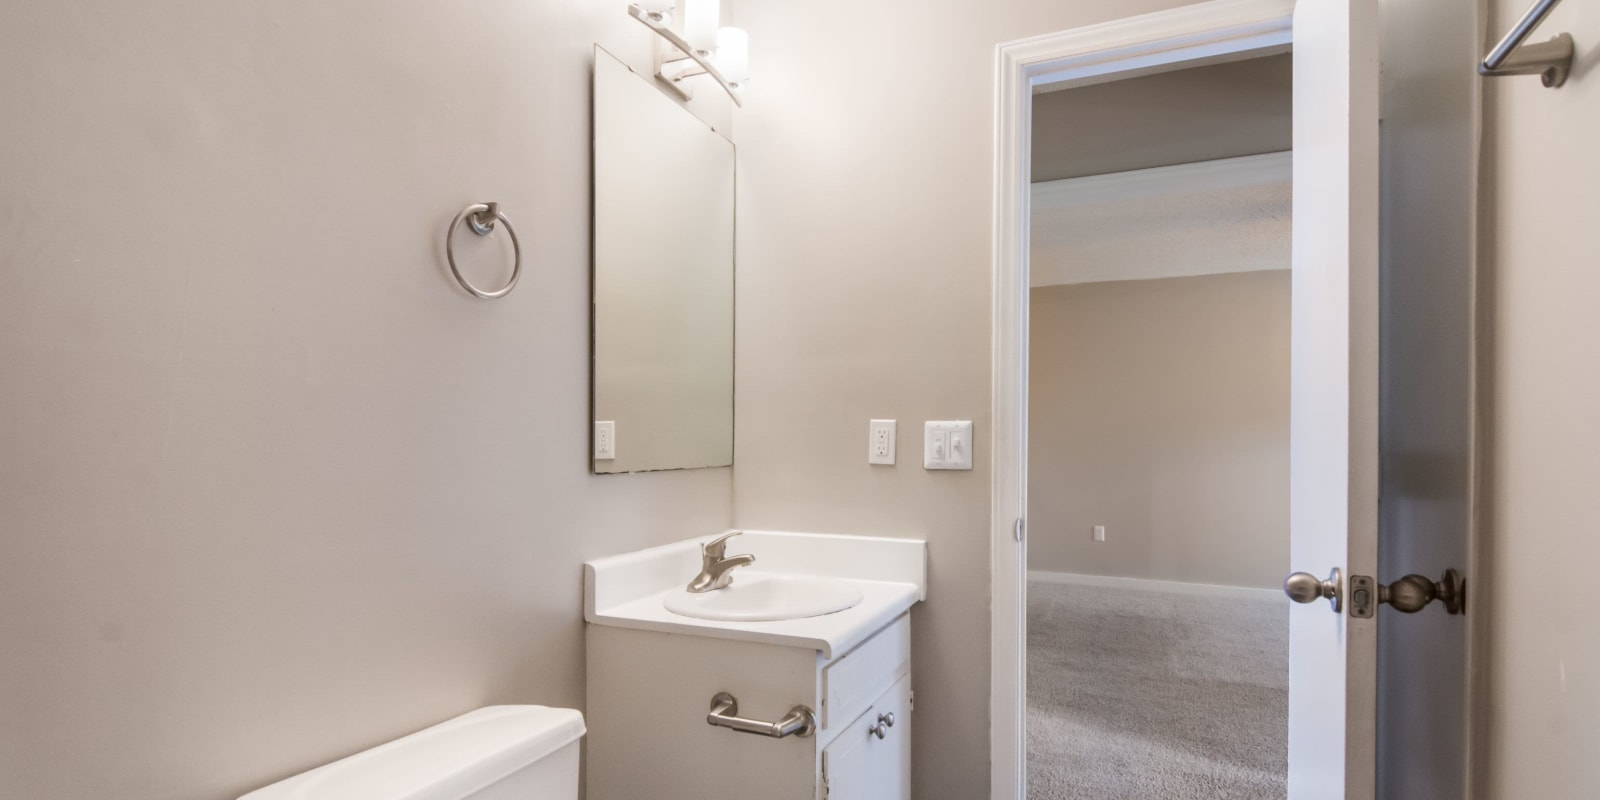 Bathroom with a vanity mirror at 1022 West Apartment Homes in Gaffney, South Carolina